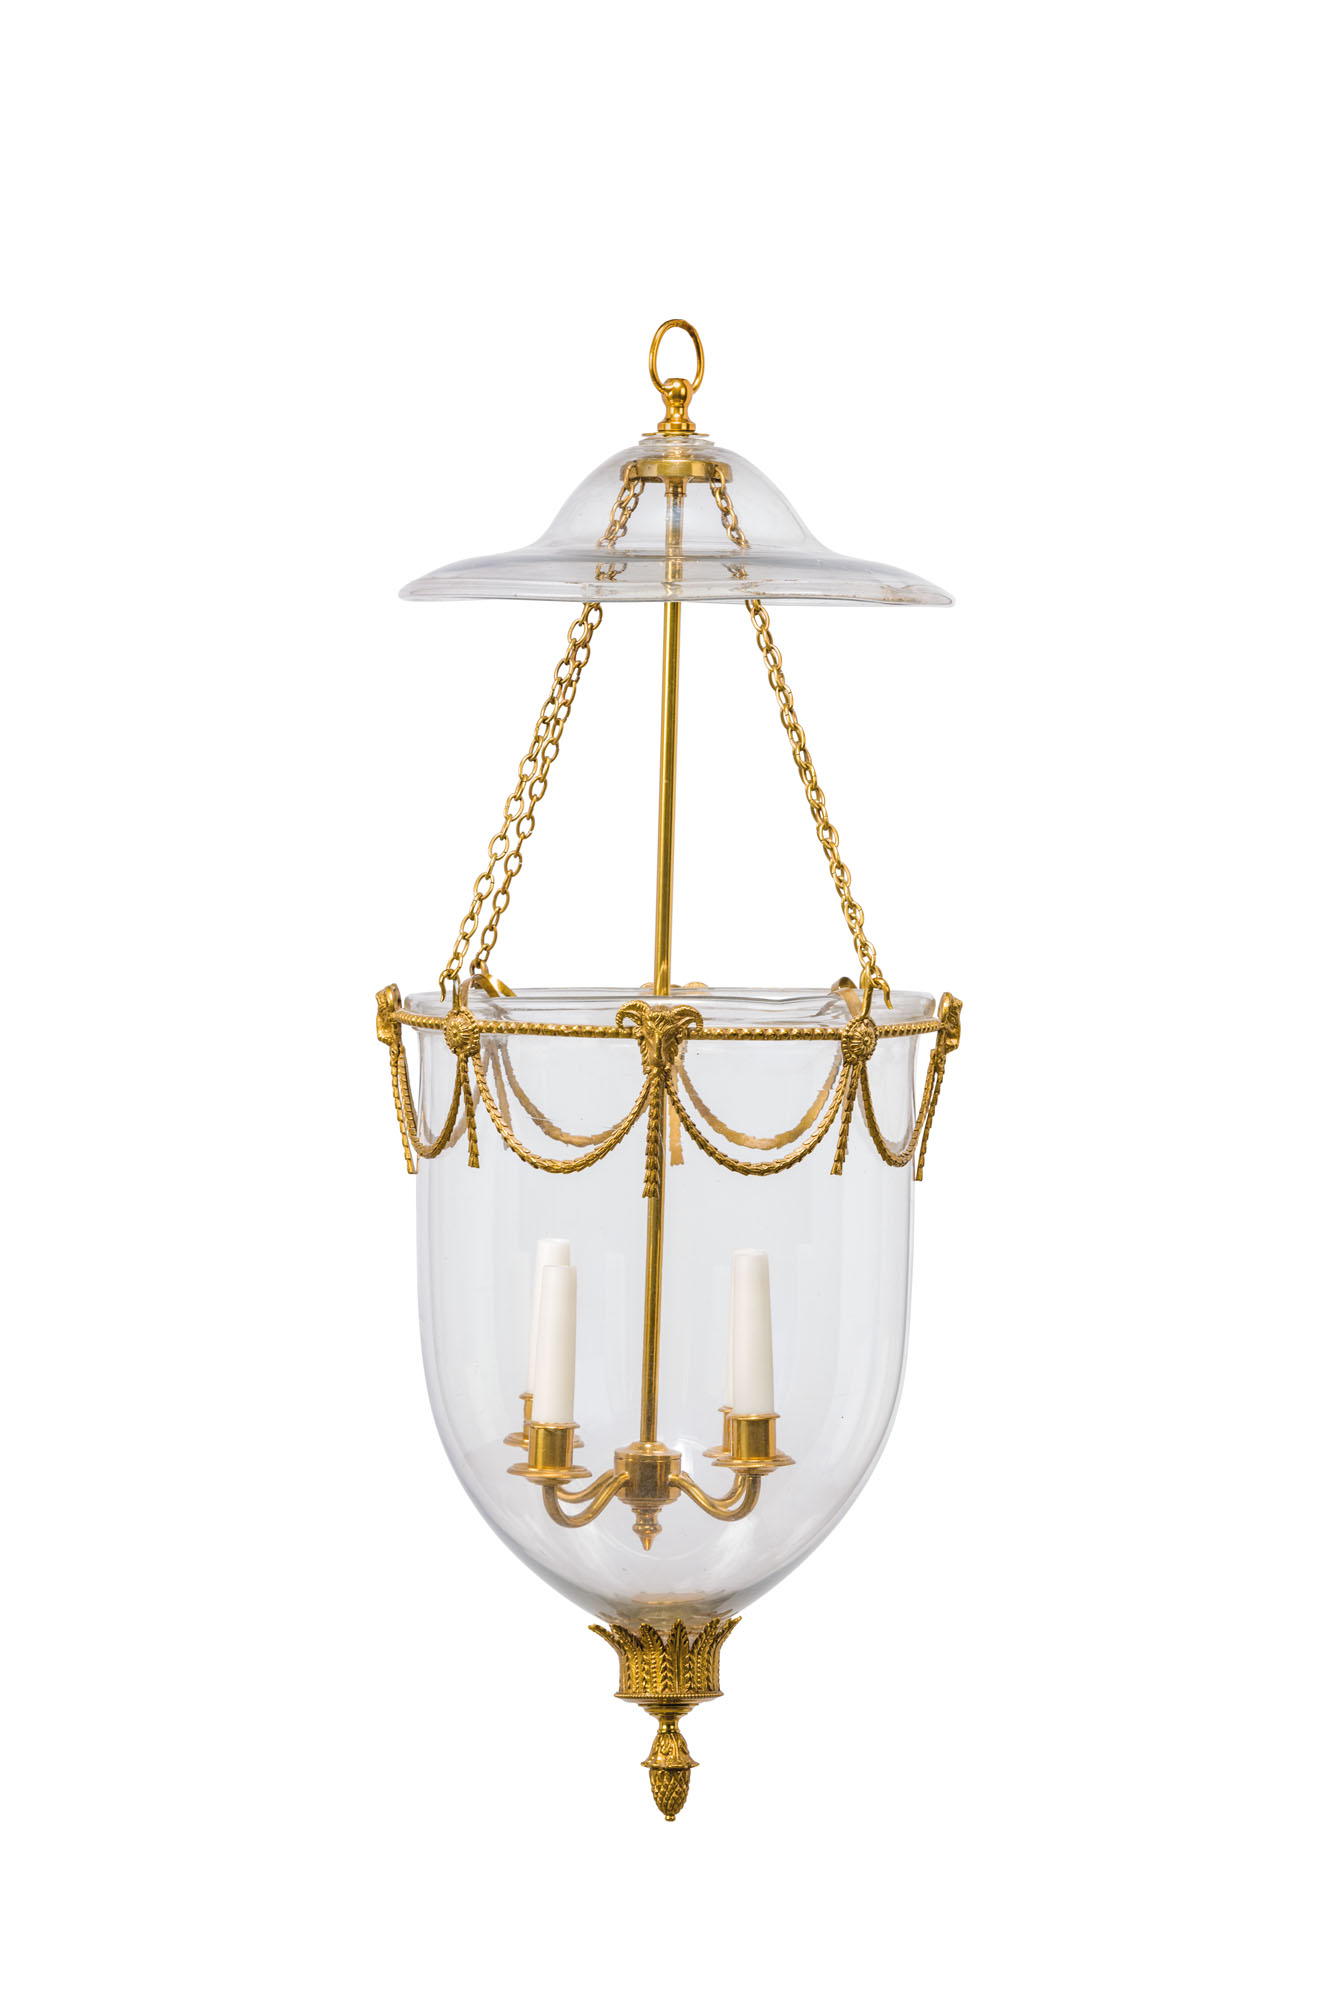 A GEORGE III-STYLE GILT-BRASS AND GLASS HANGING-LIGHT